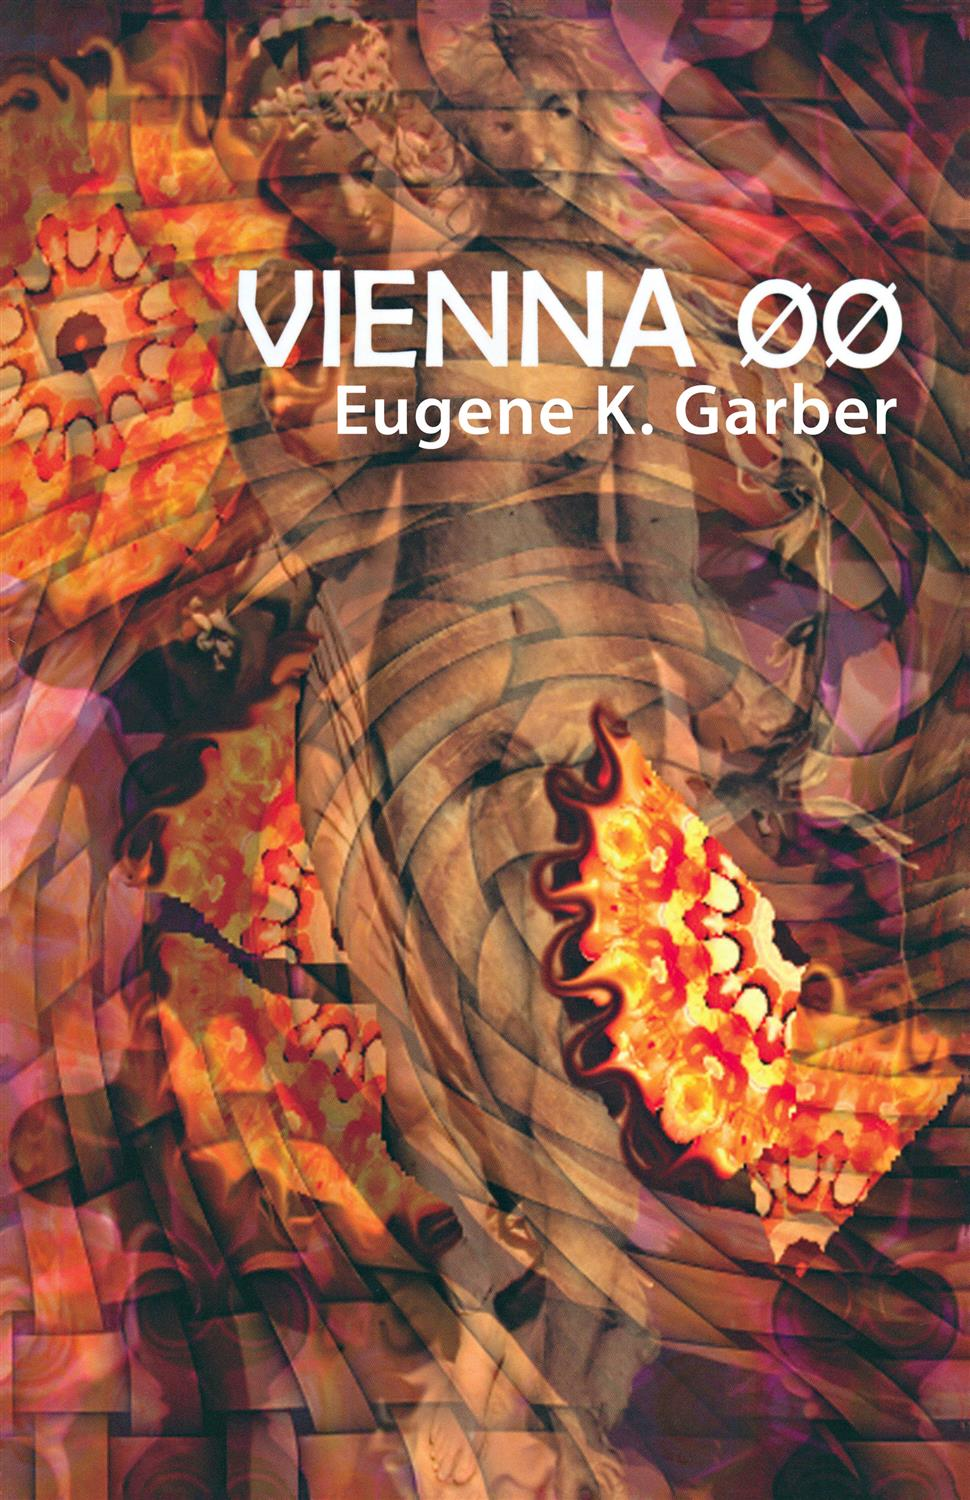 Vienna front cover 5.5x8.5 300dpi, v3, 1500w.jpeg